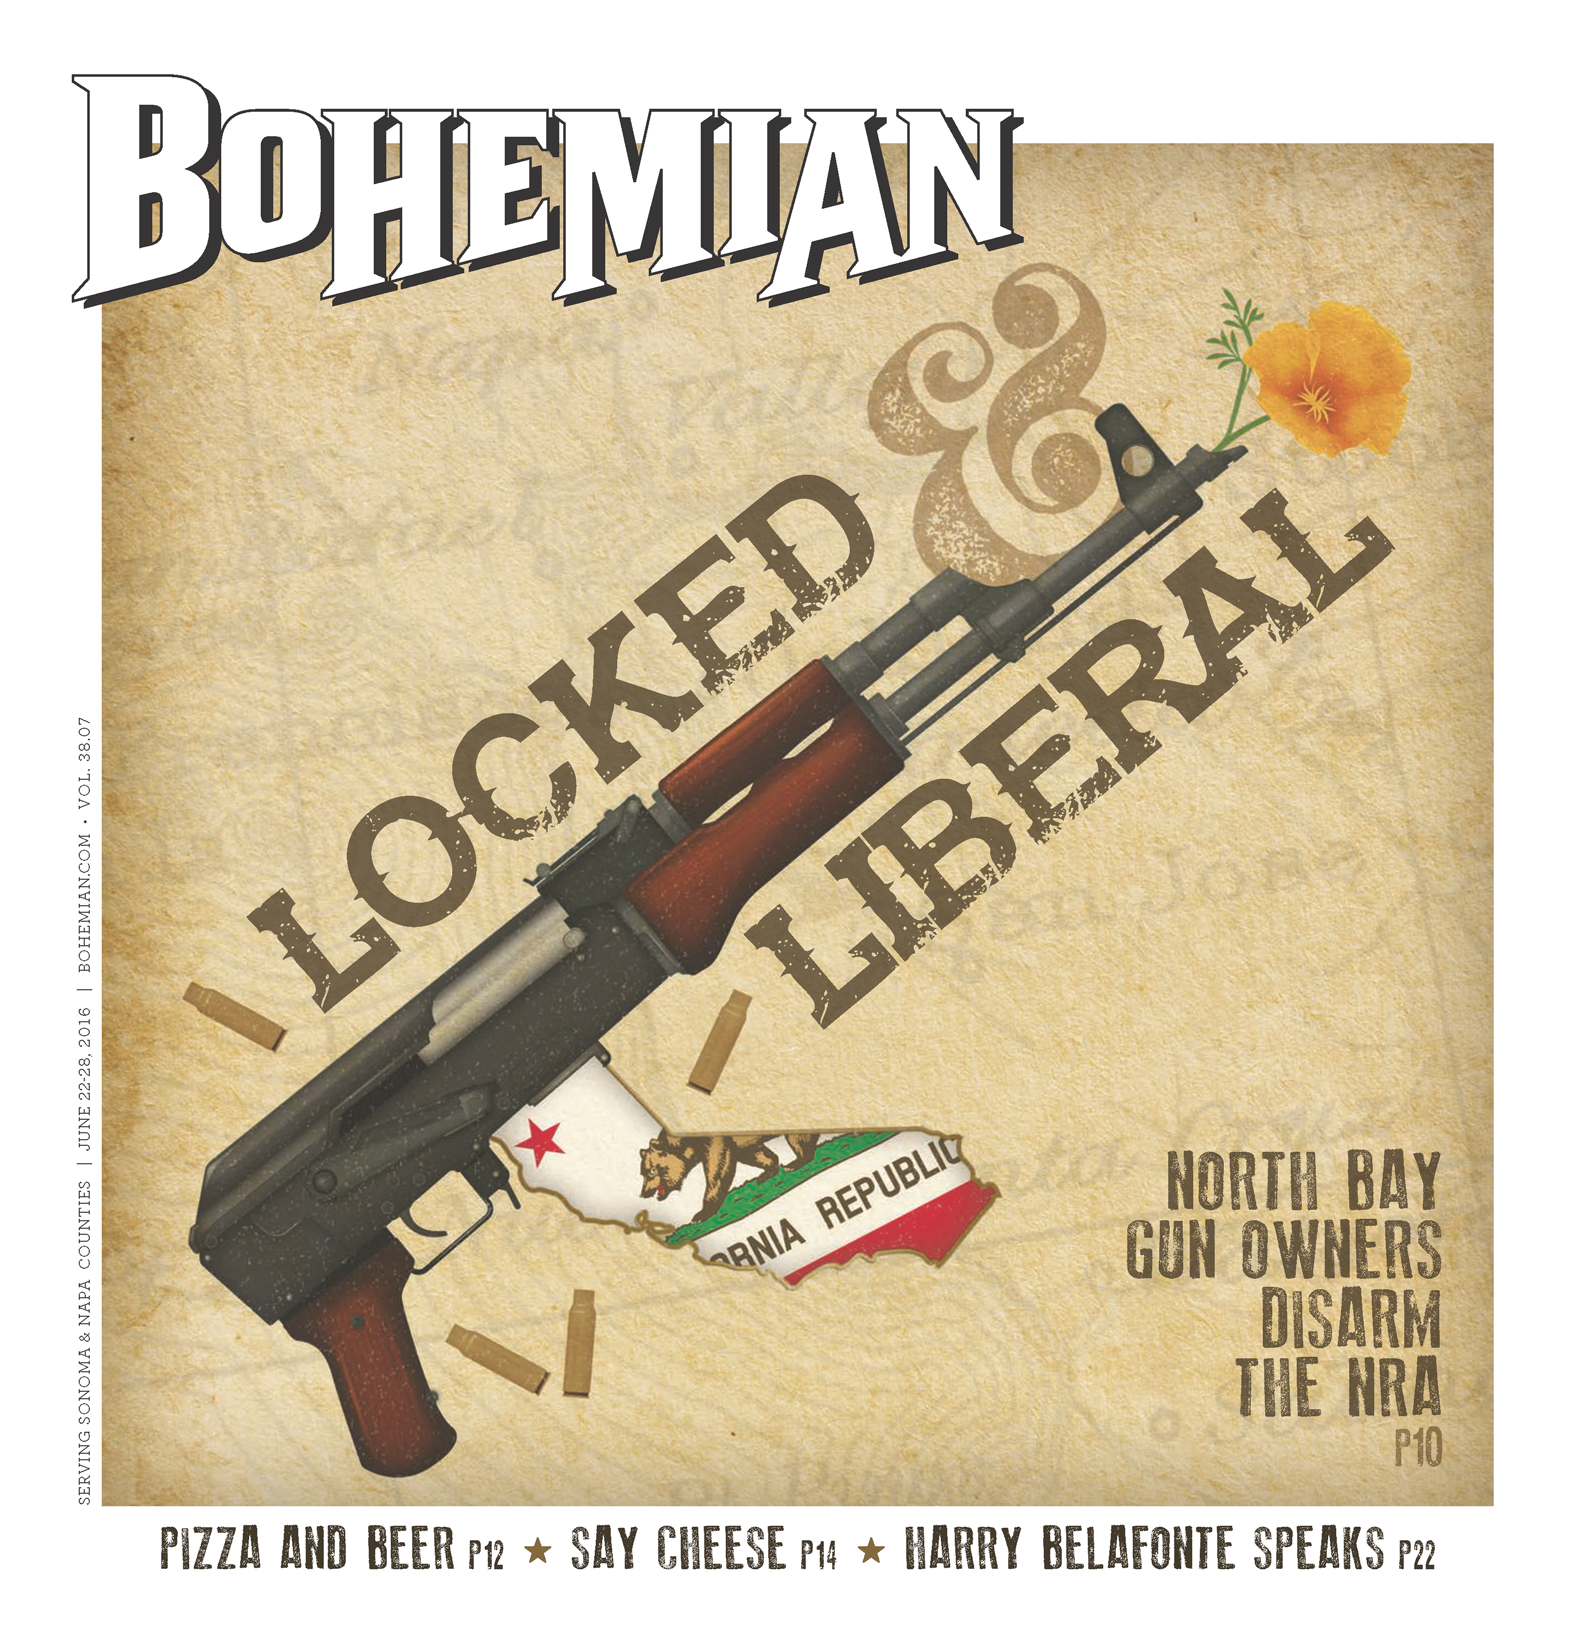 Weekly magazine with California gun rights cover feature